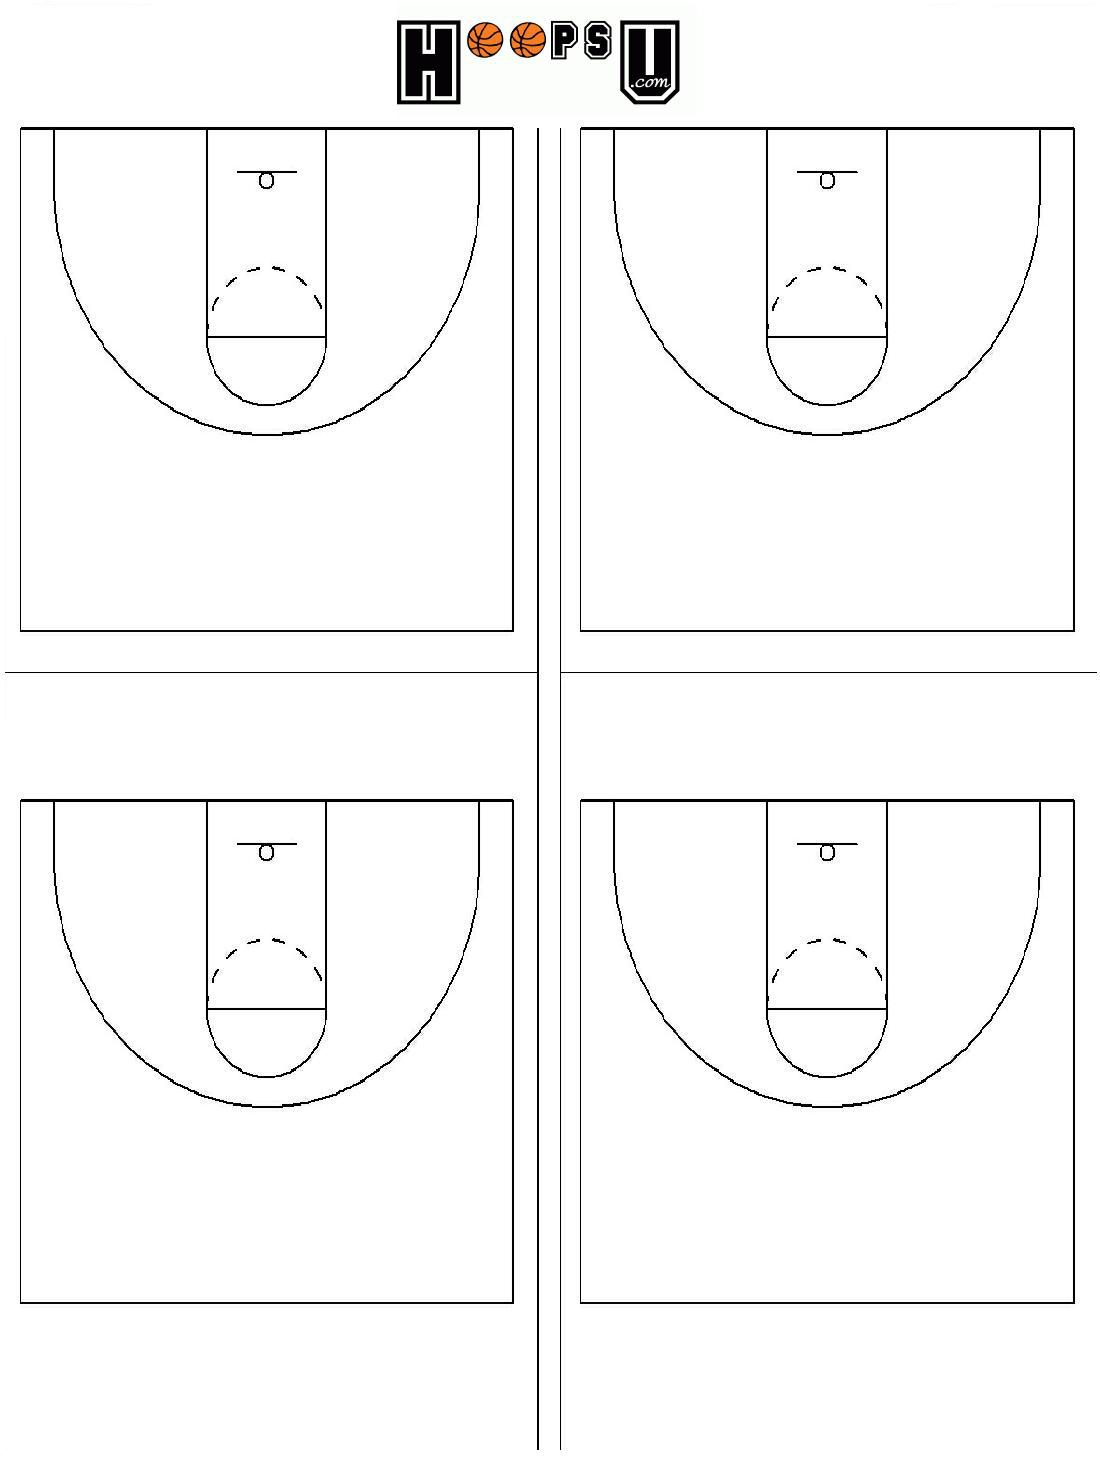 Blank Printable Basketball Diagram